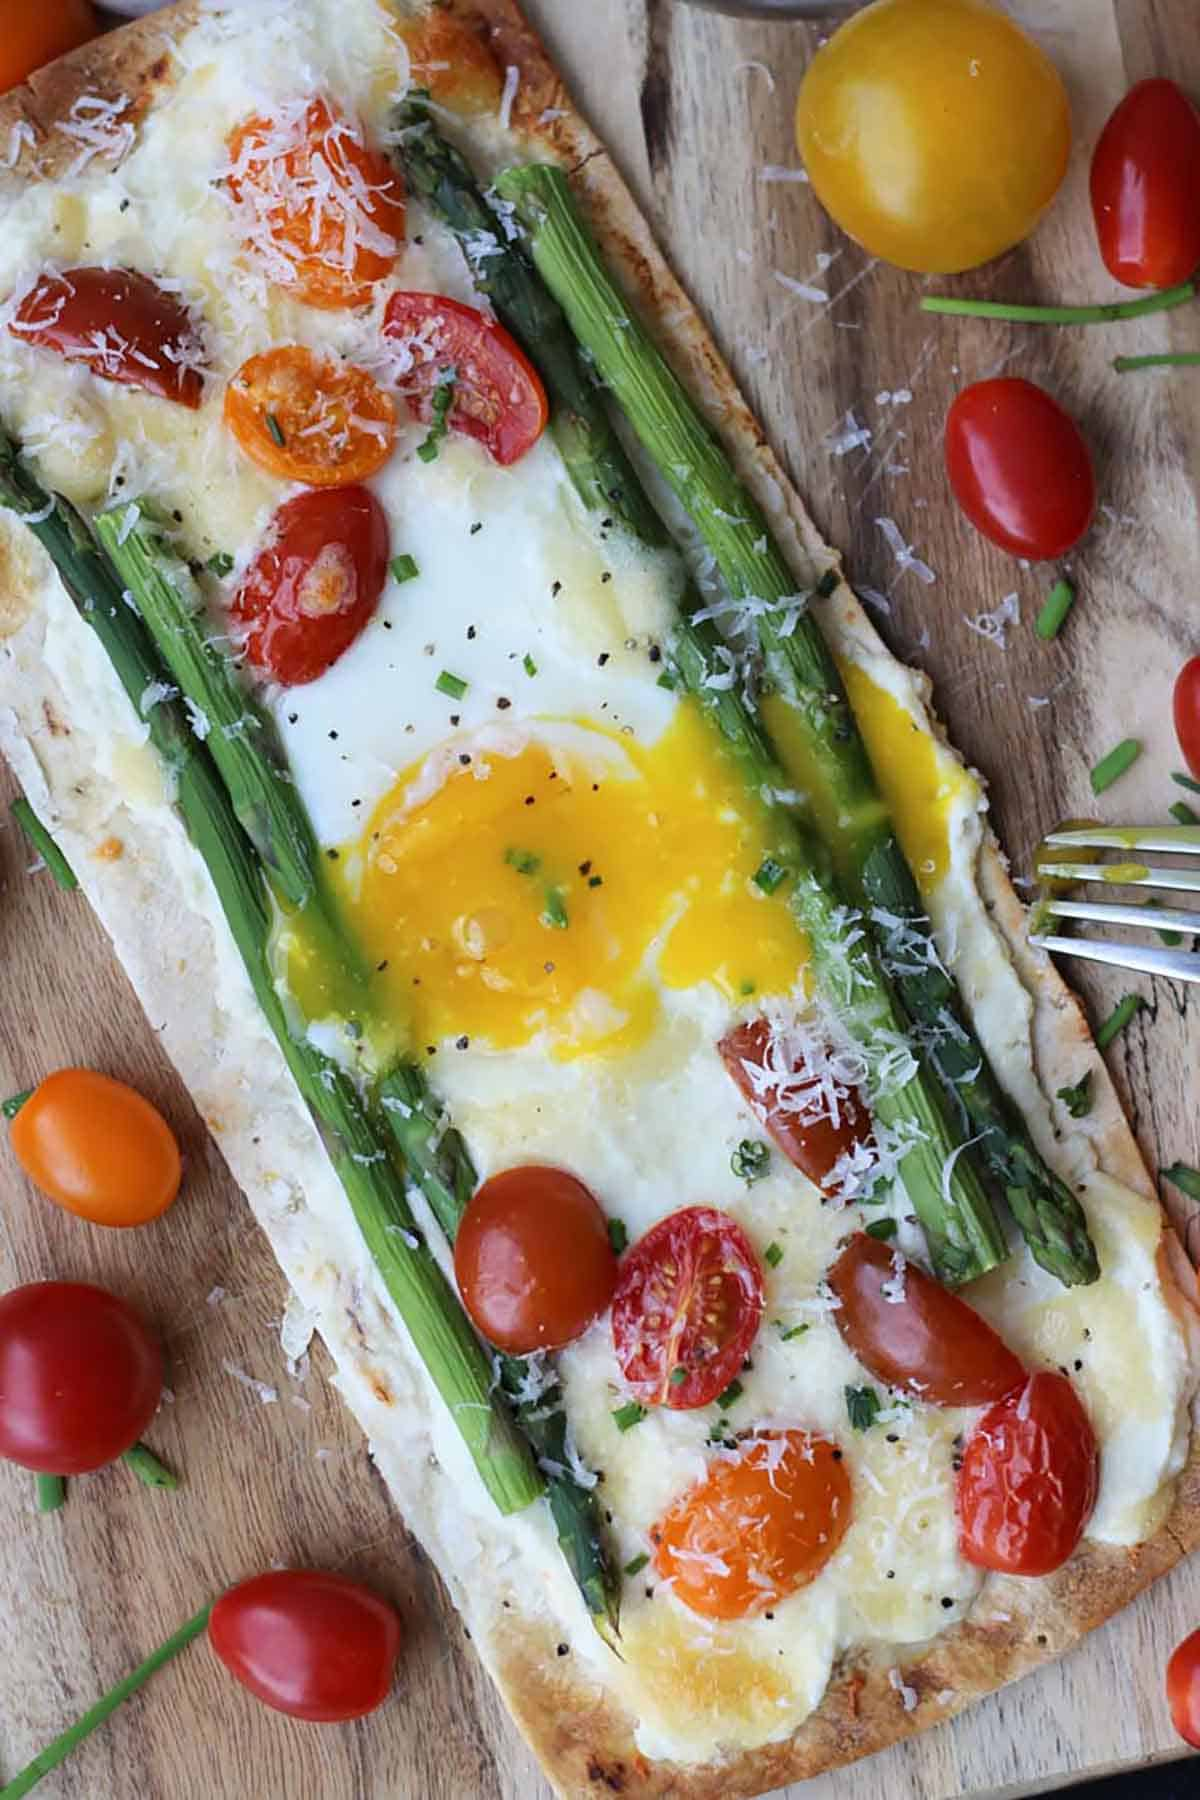 A vegetable pizza with an egg on top, asparagus, cherry tomatoes, and parmesan.